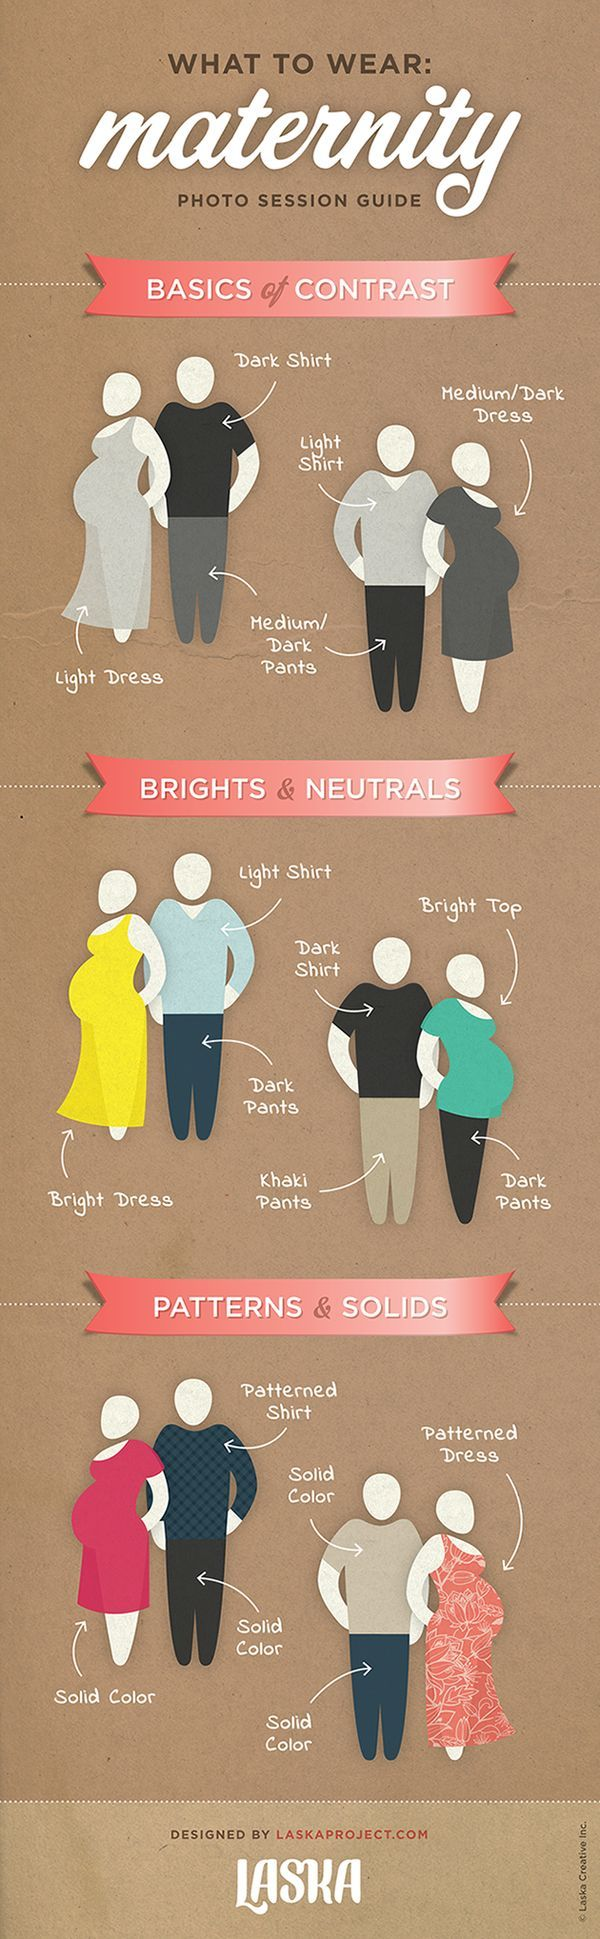 What to Wear to a Maternity Photo Session